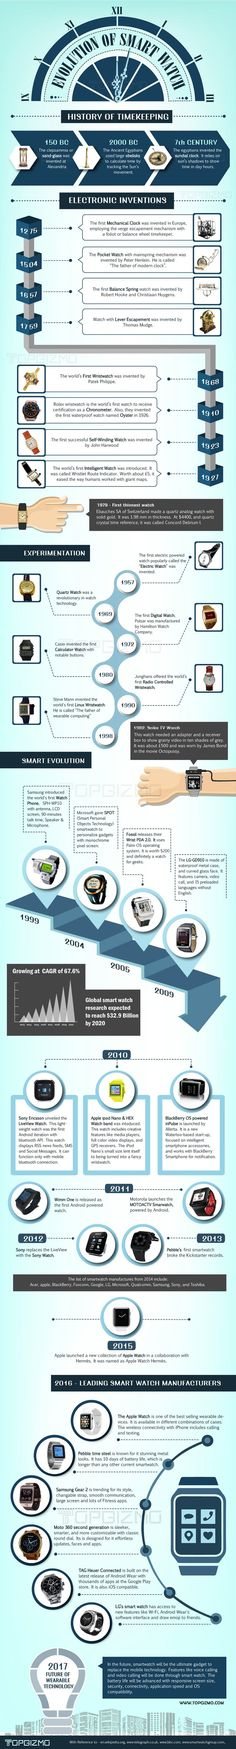 Evolution of Smart Watch History of Timekeeping Infographic #technology #gadget